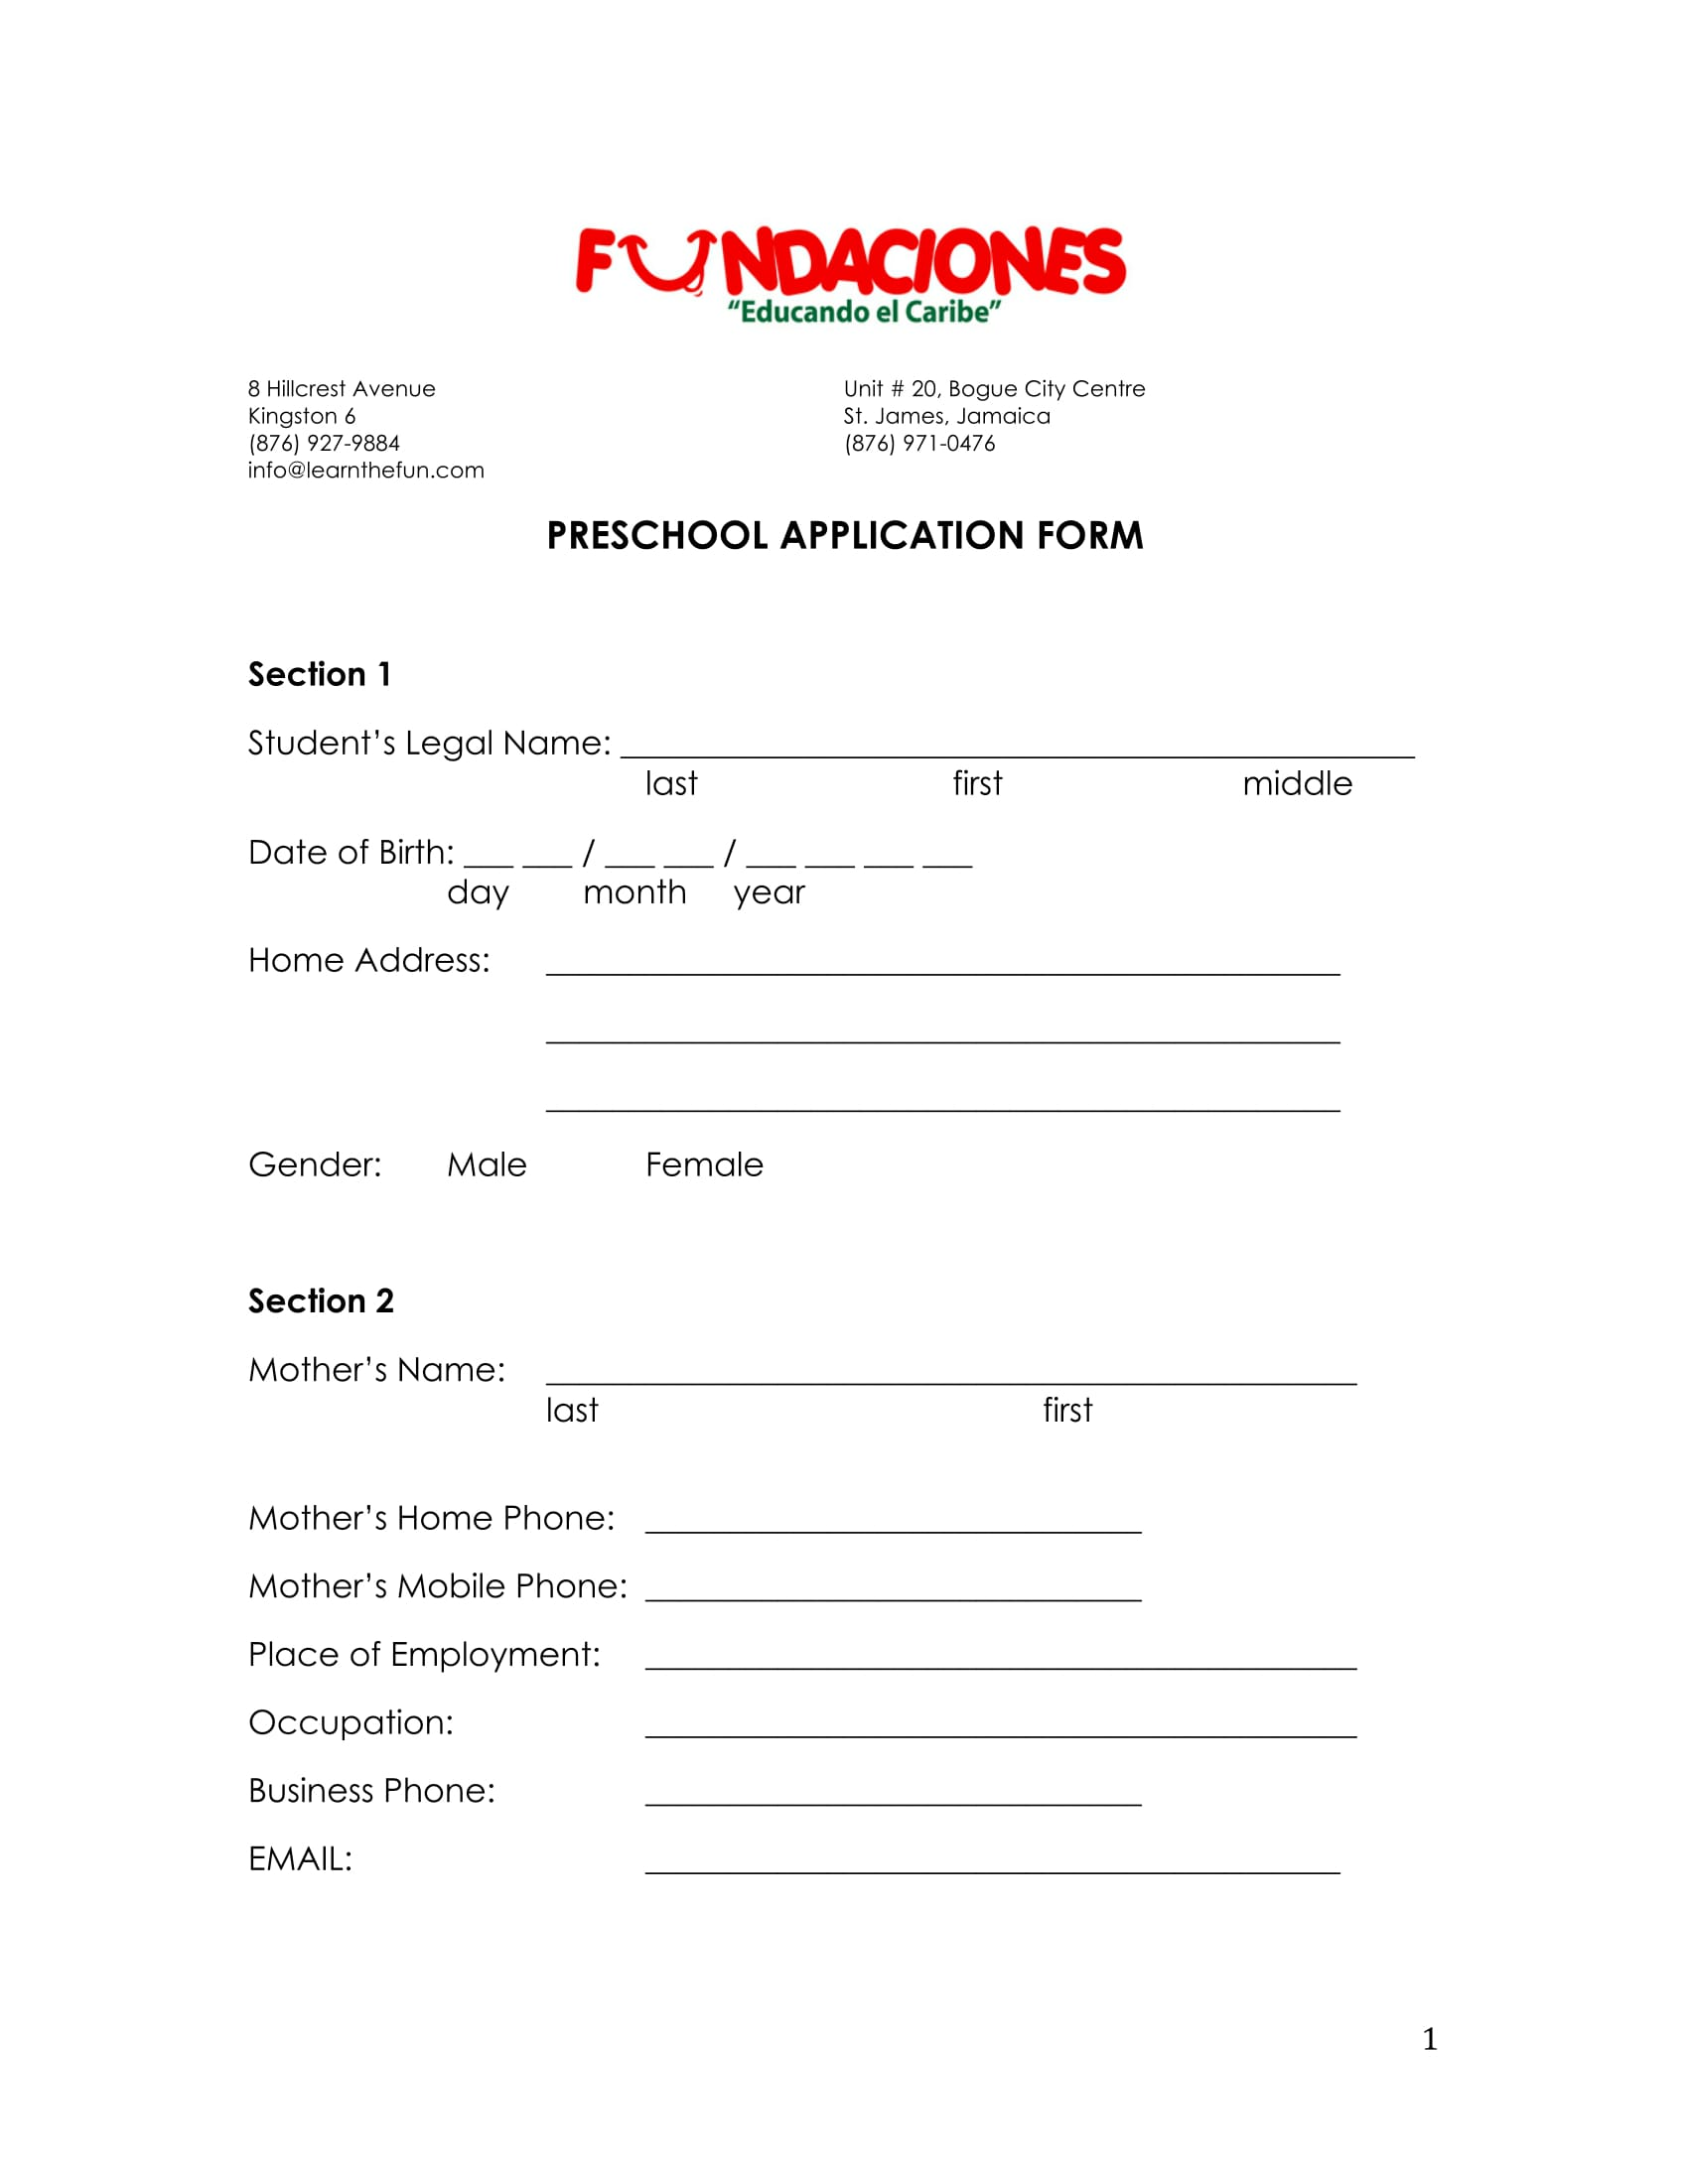 20 Application Form Samples for Job Events Businesses and – School Admission Form Sample